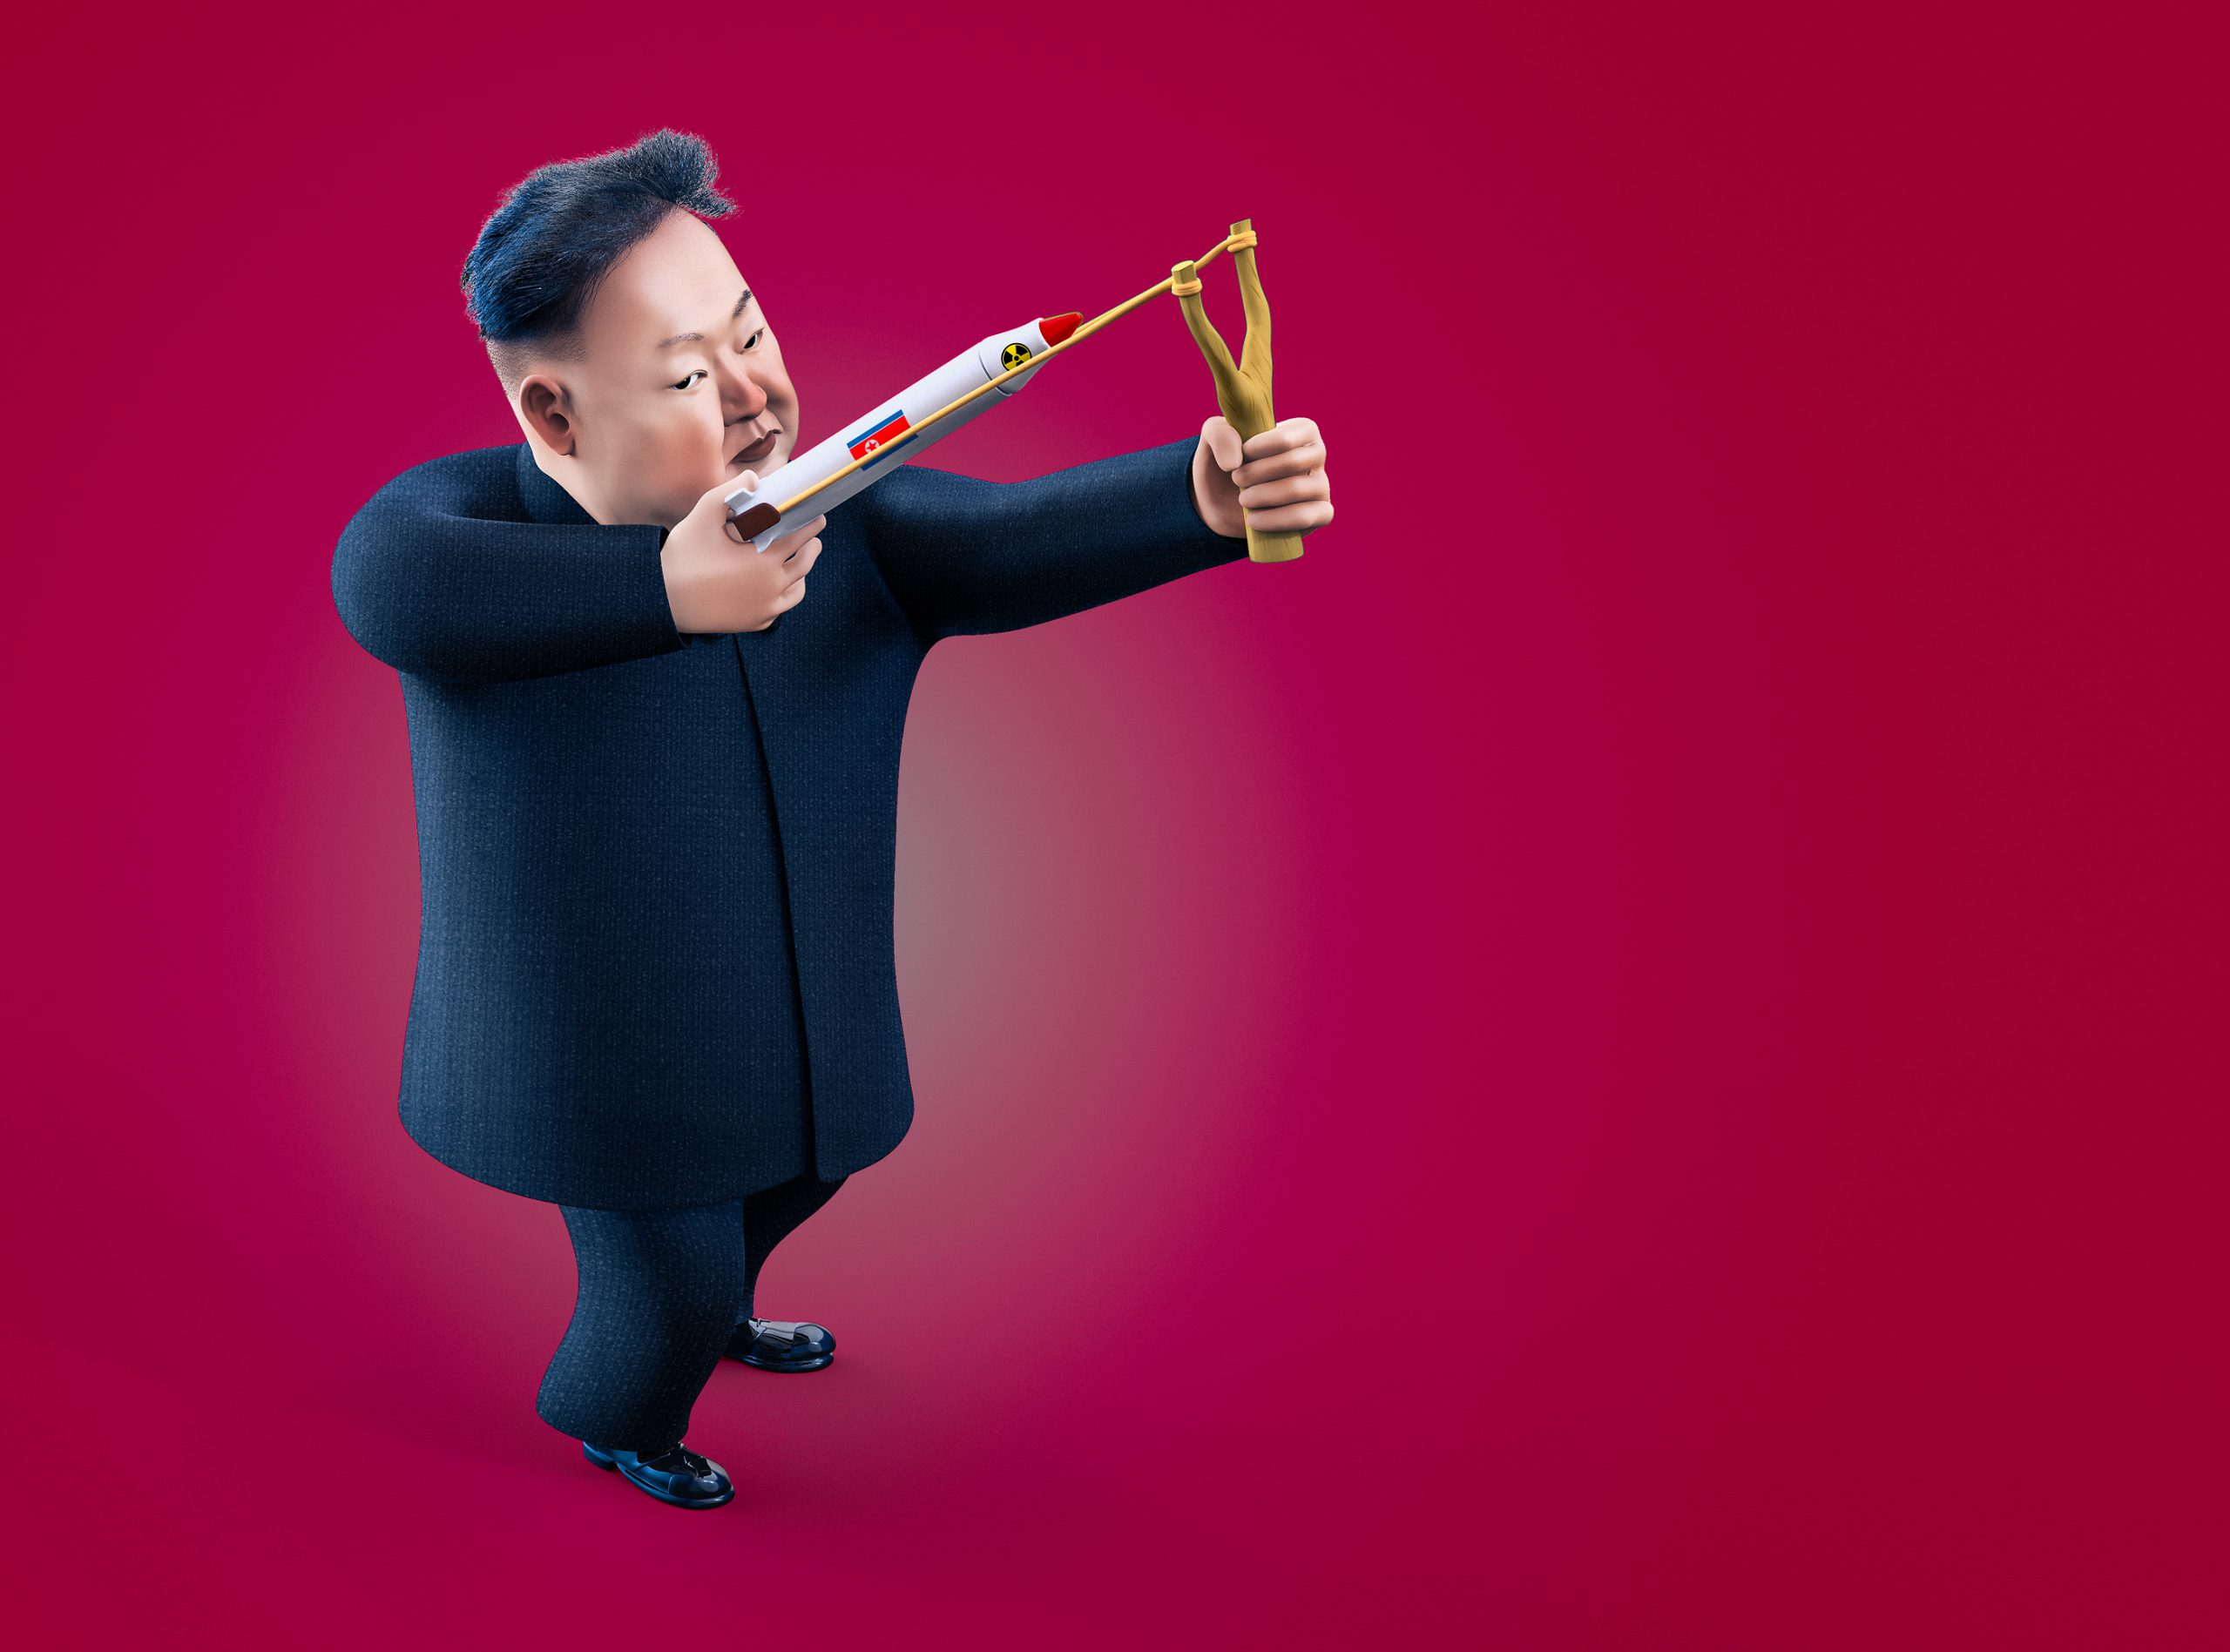 BS_North-Korea threatens to use nuclear weapons_Motttive_181890769